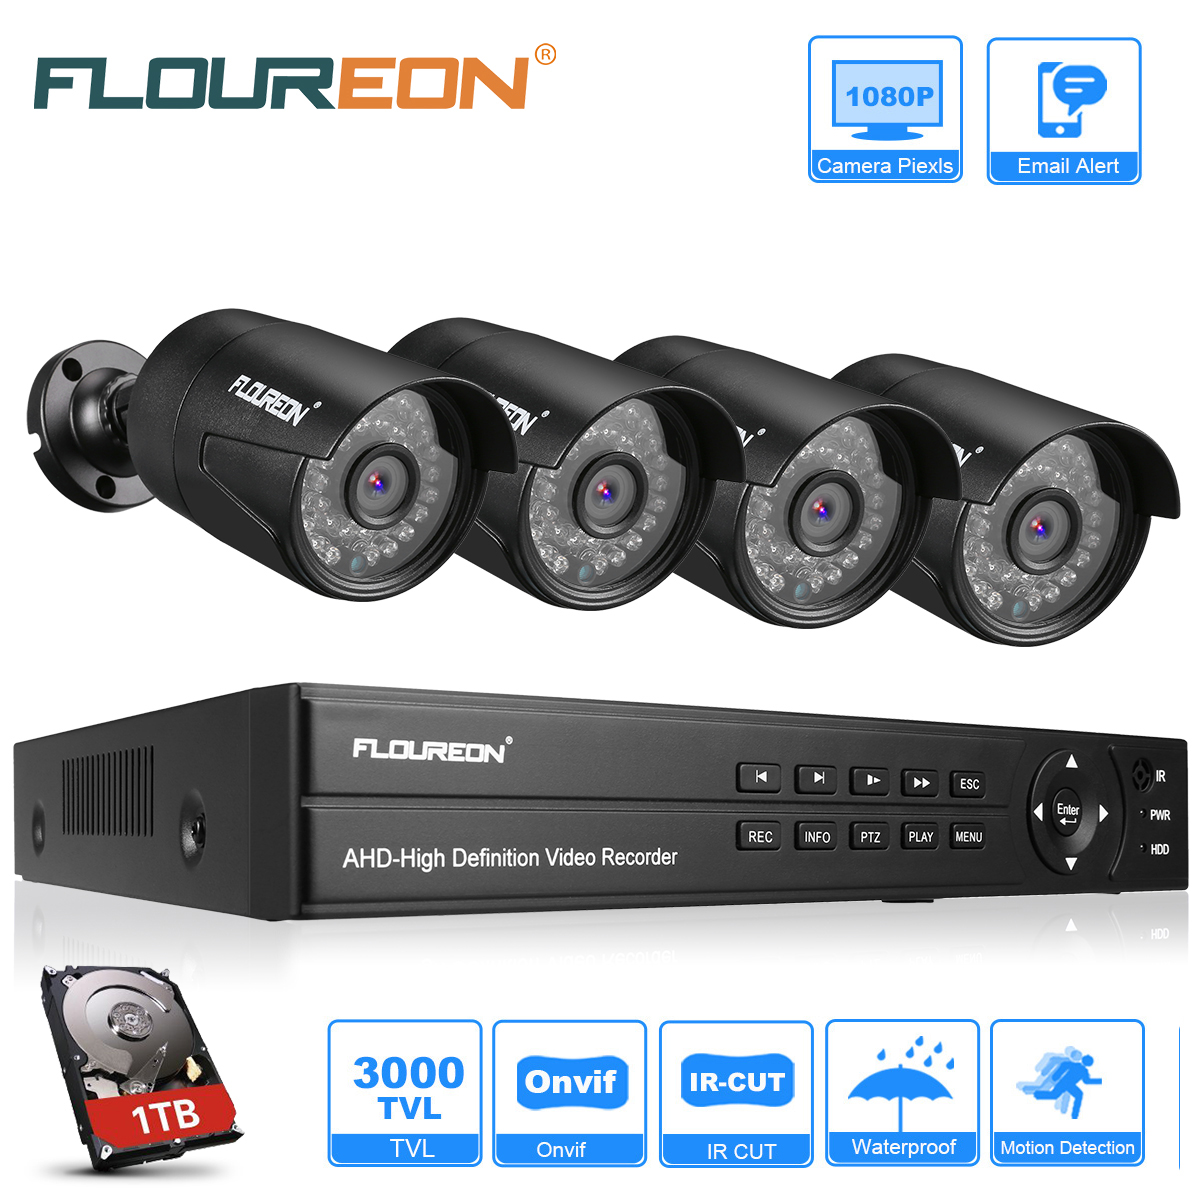 1TB HDD,8CH 1080N AHD DVR 4x Outdoor IR-CUT 3000TVL 1080P Security Camera System